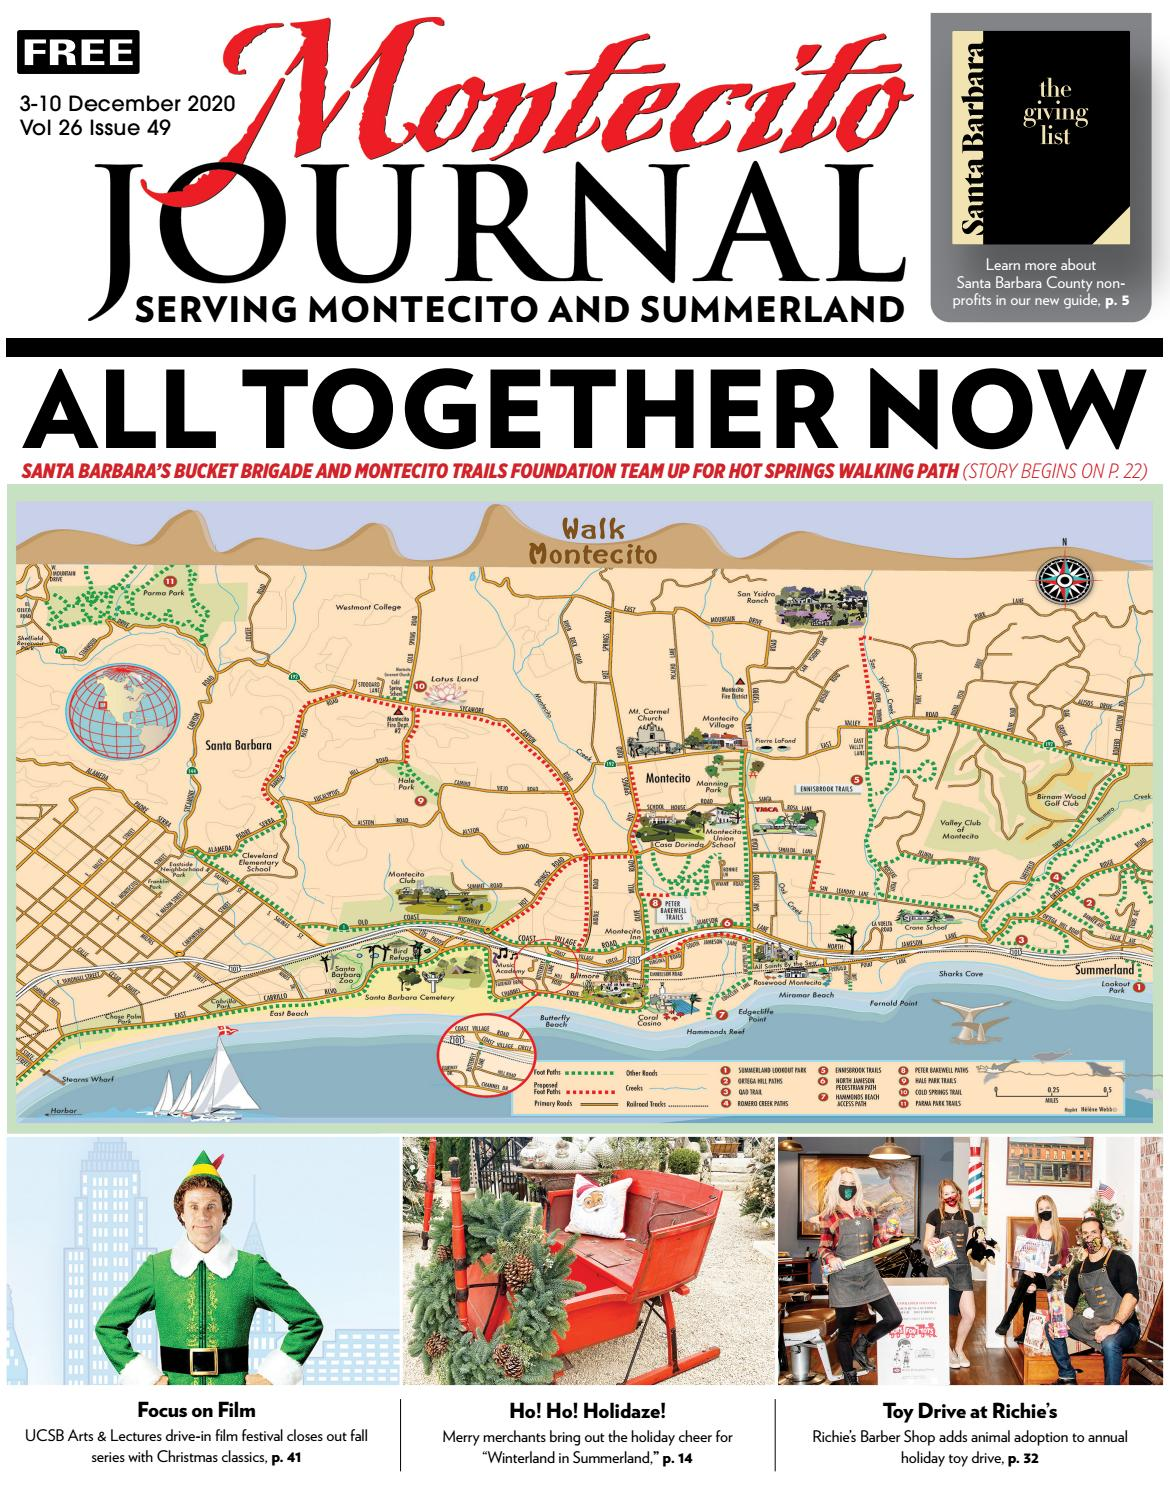 All Together Now By Montecito Journal Issuu